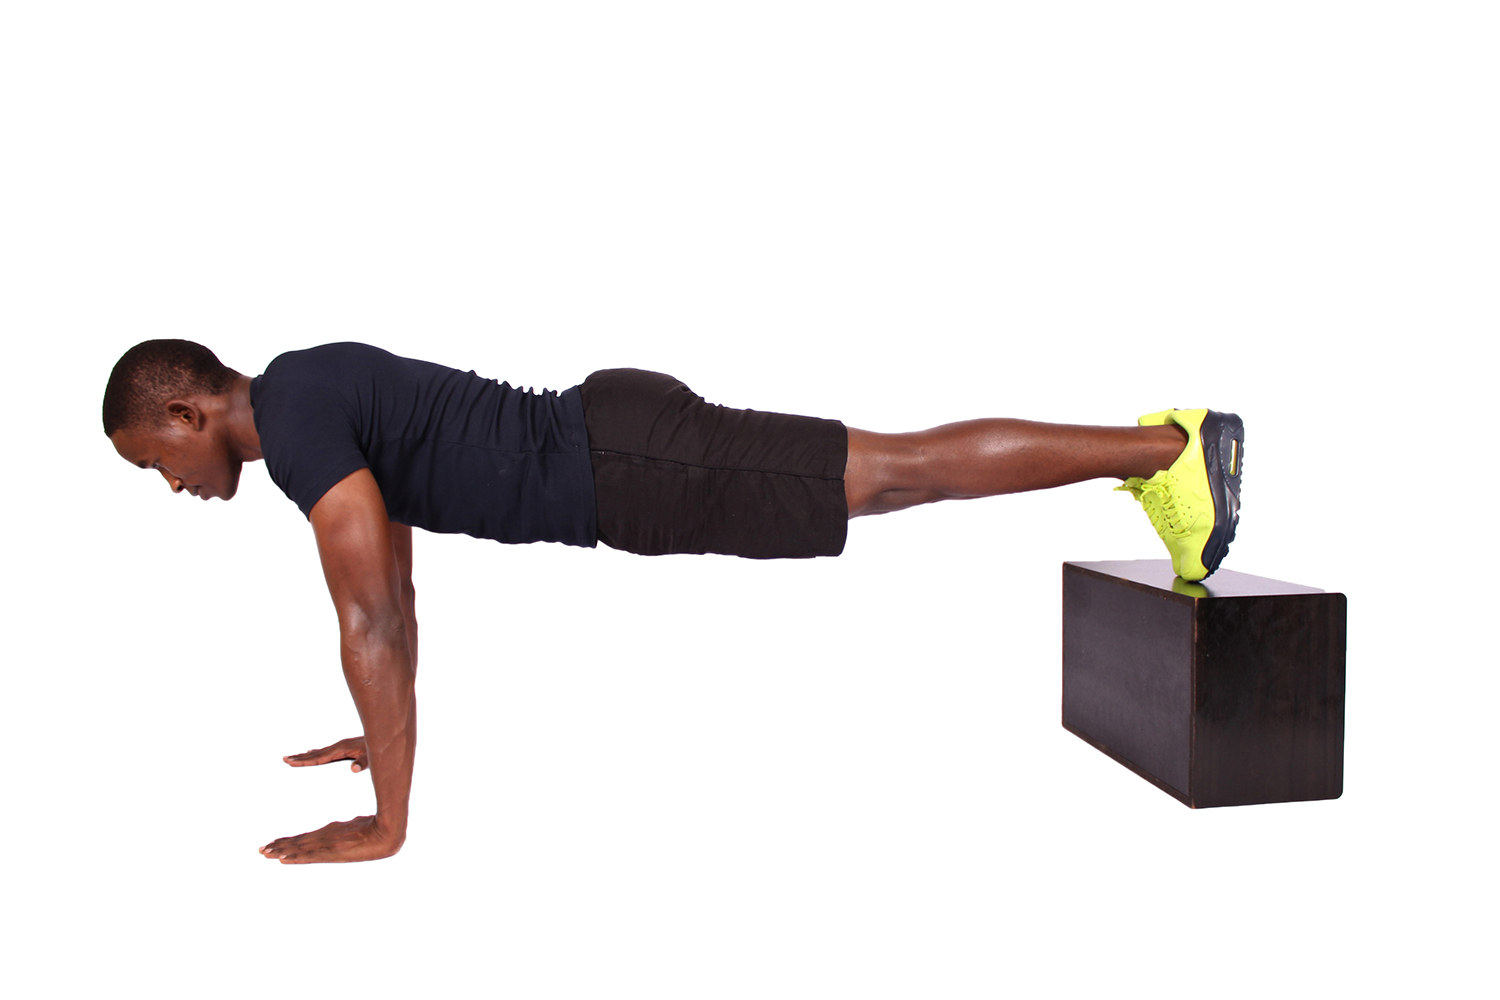 Young man doing decline push ups with feet elevated